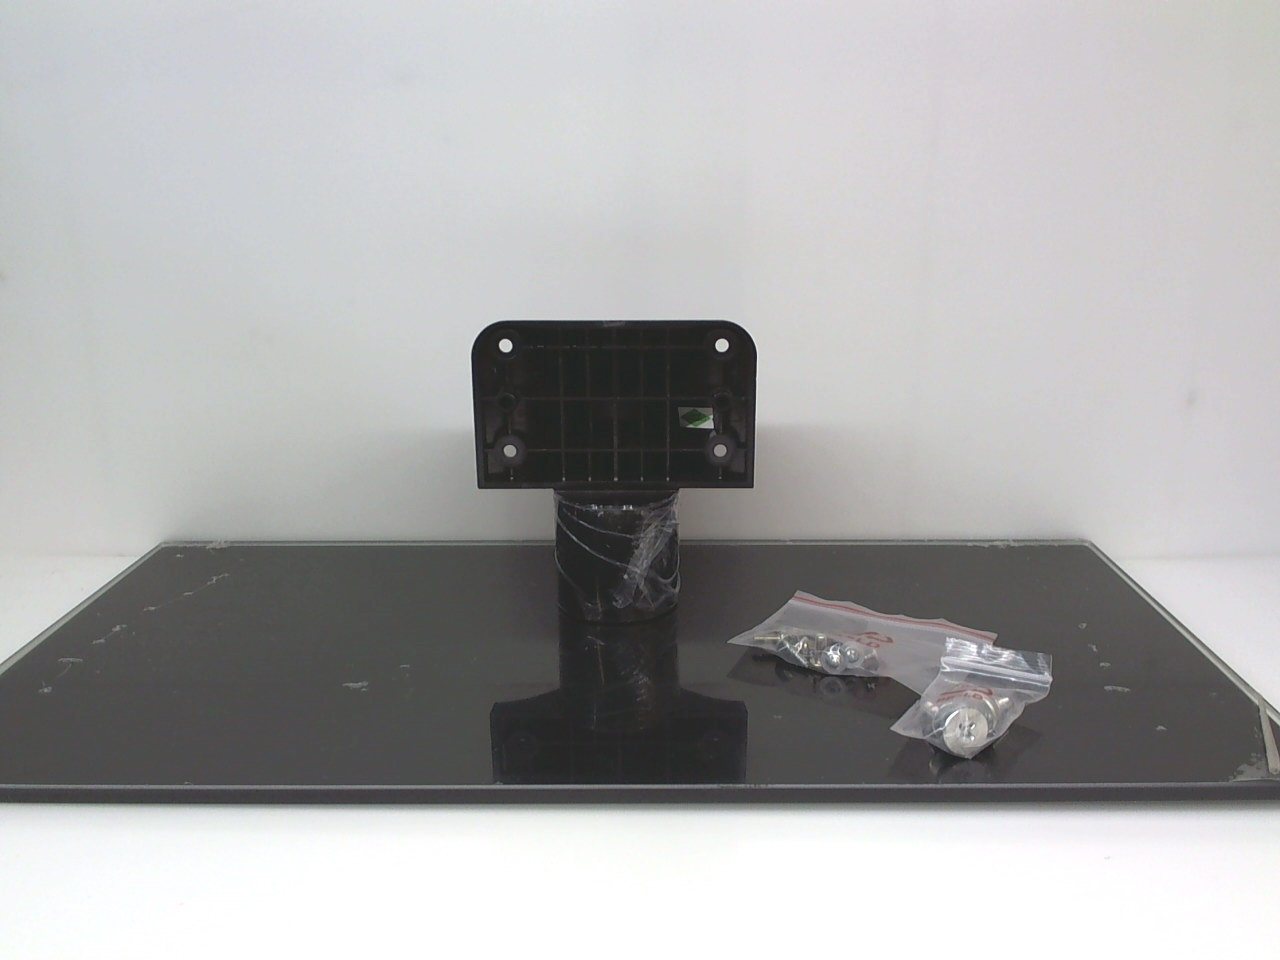 TCL TV Model LE46FHDE5300 Complete TV Stand 49-942730-GLS01